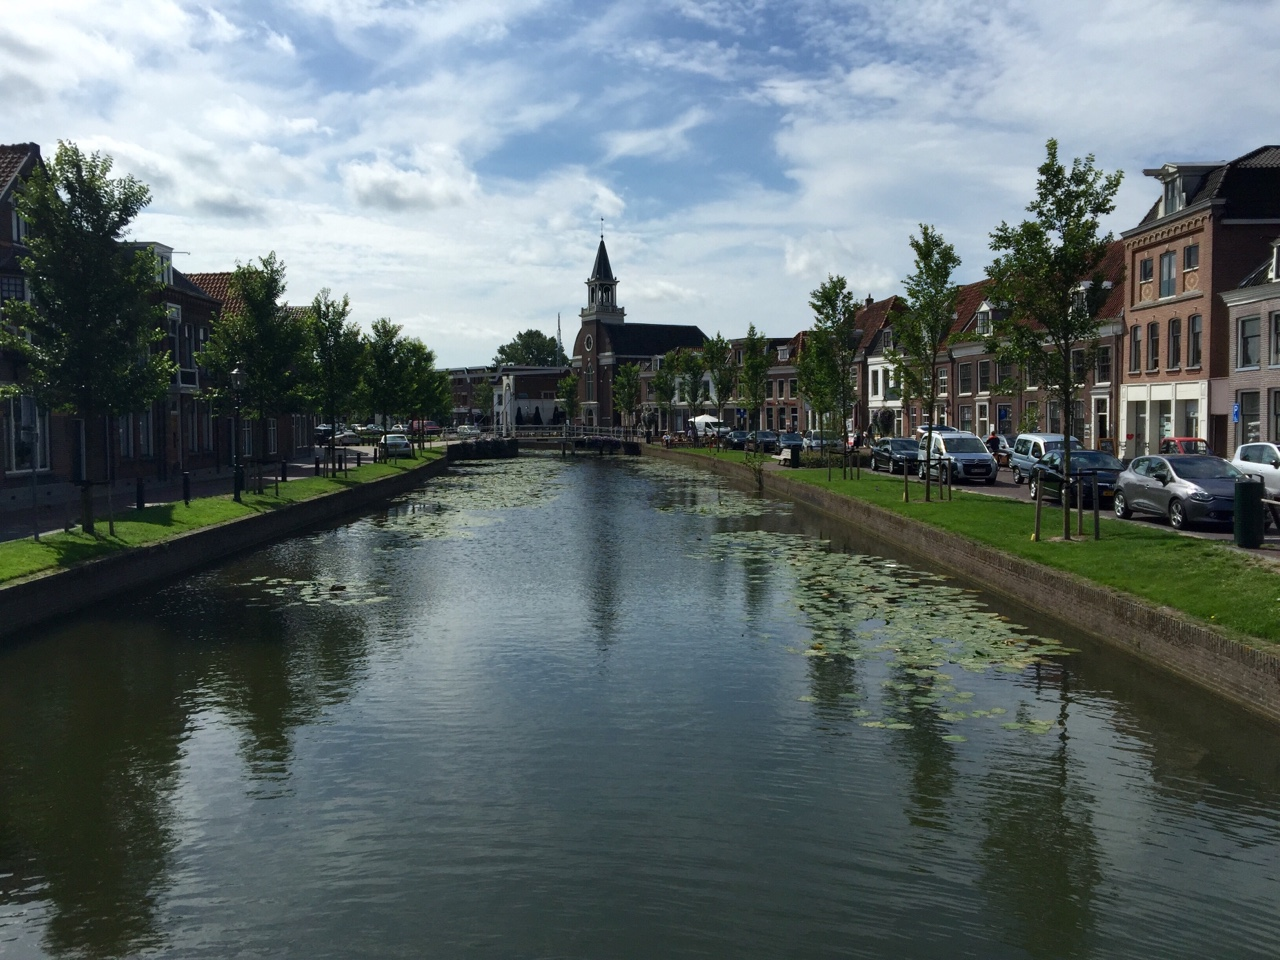 Weesp, Netherlands     Home to a close friend of mine that I met on the Camino, and to some excellent cheese and ice cream shops, Weesp is indicative of the serenity missing from Amsterdam. The little rivers weaving intricate latticework through the city itself appear to continue endlessly when viewed from within the city itself. Such a beautiful place!